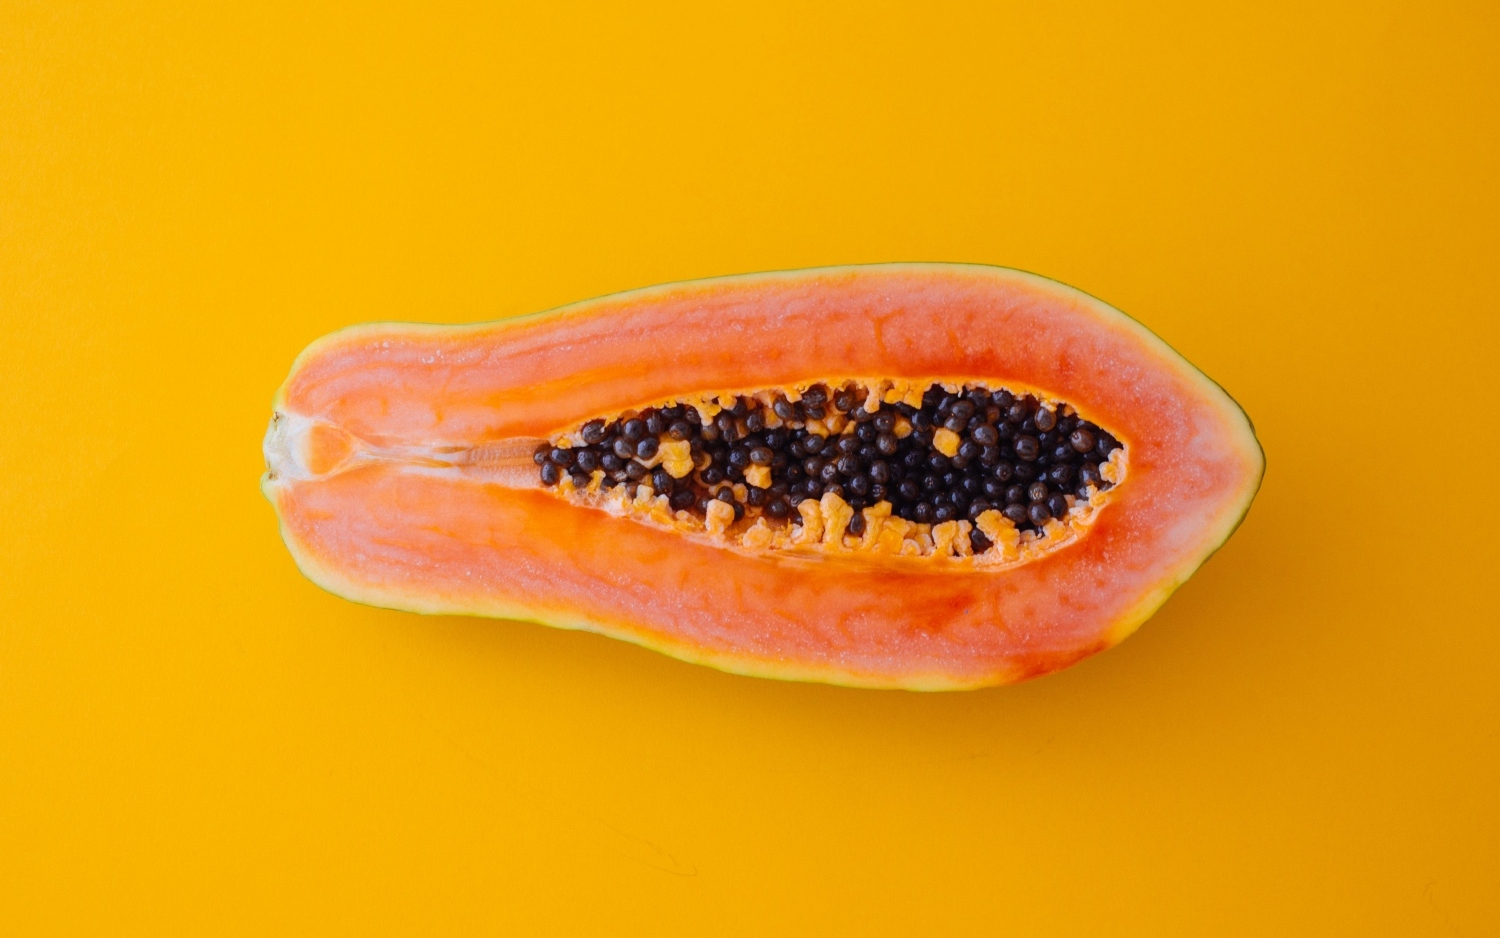 Organic-papaya-on-plate-as-part-of-nutrition-plan-banner.jpg